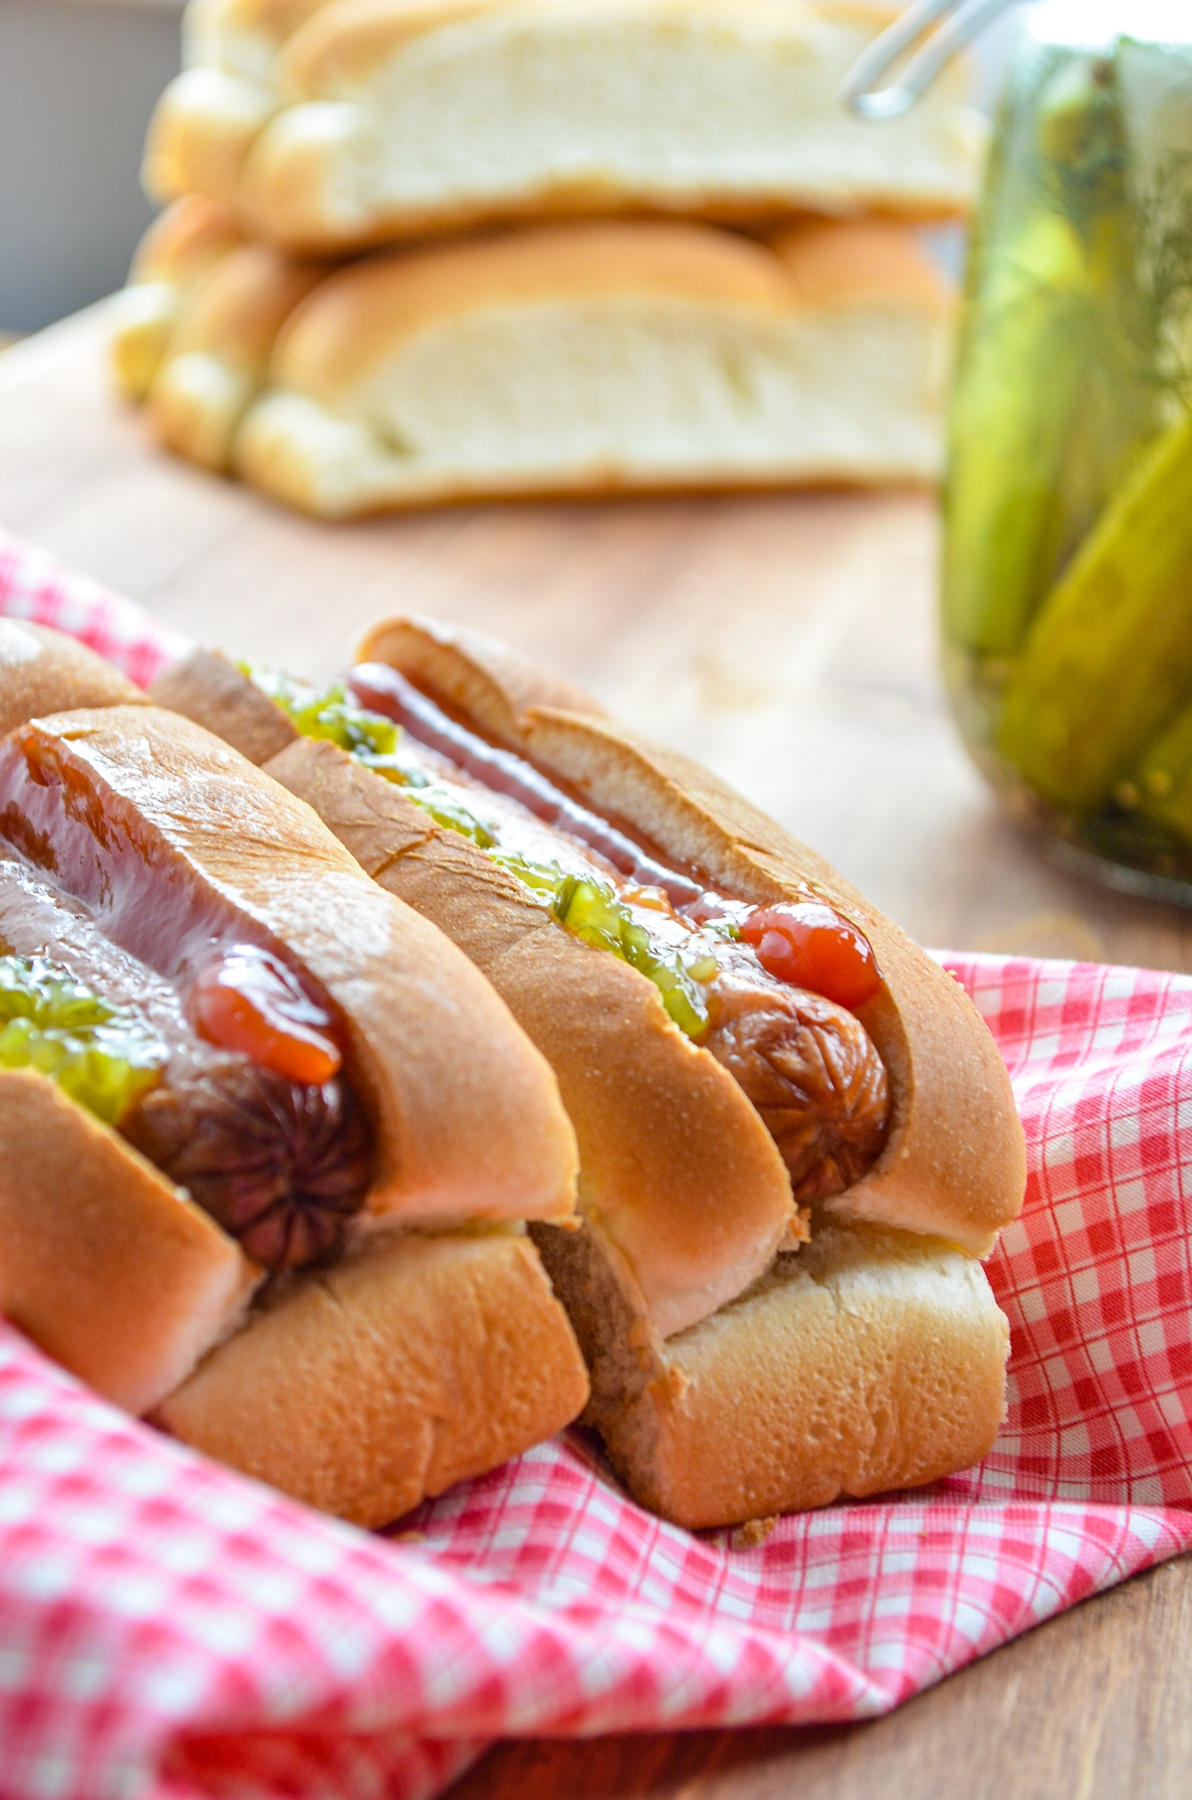 Hot dogs, prepared with toasted buns and classic toppings.